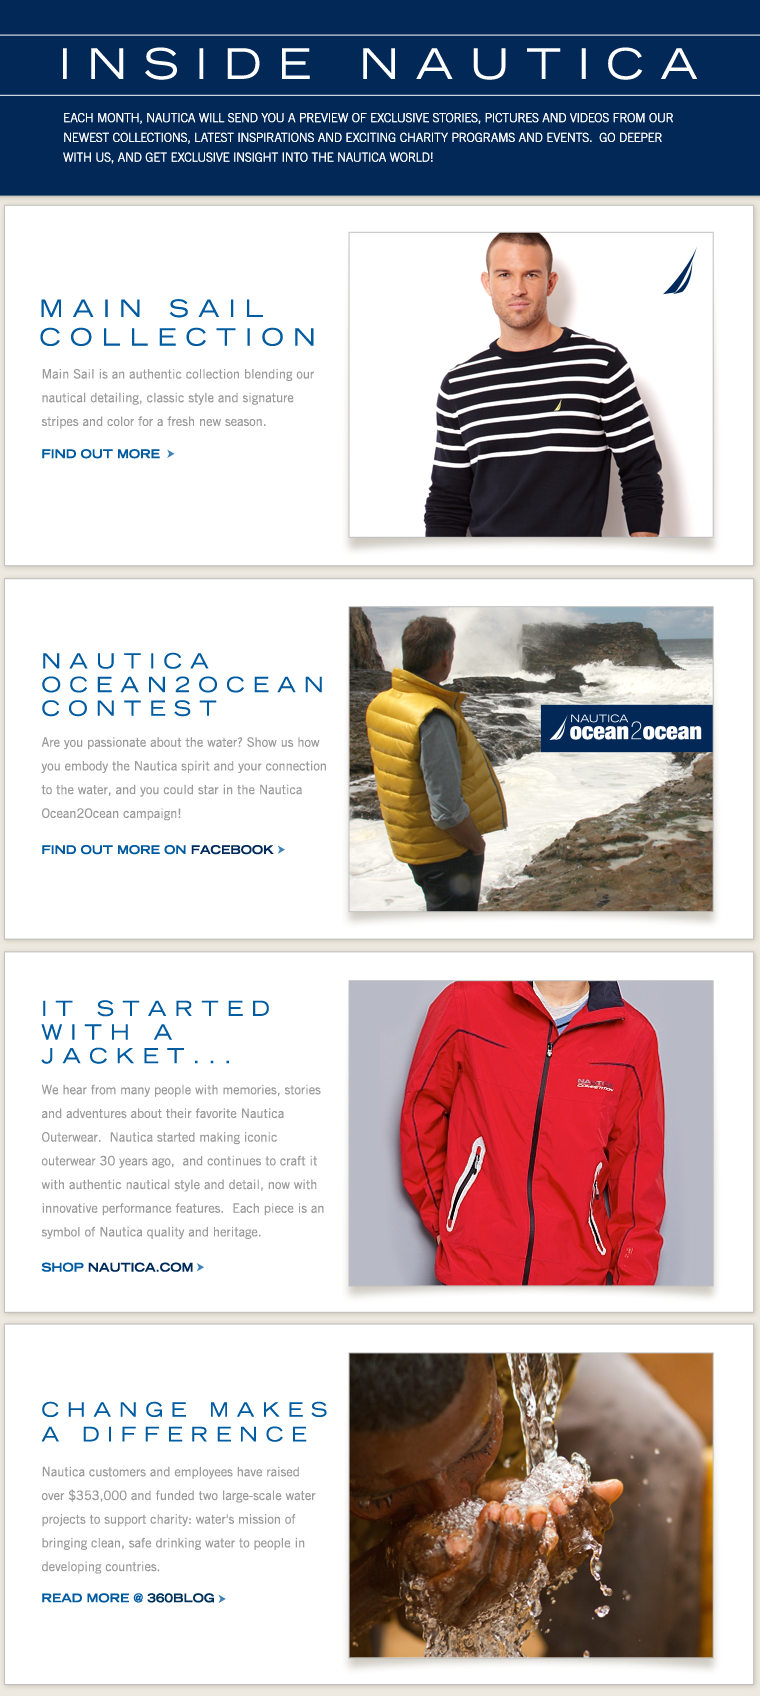 INSIDE NAUTICA: Each month, NAUTICA will send you a preview of exclusive stories, pictures and videos from our newest collections, latest inspirations and exciting charity programs and events!